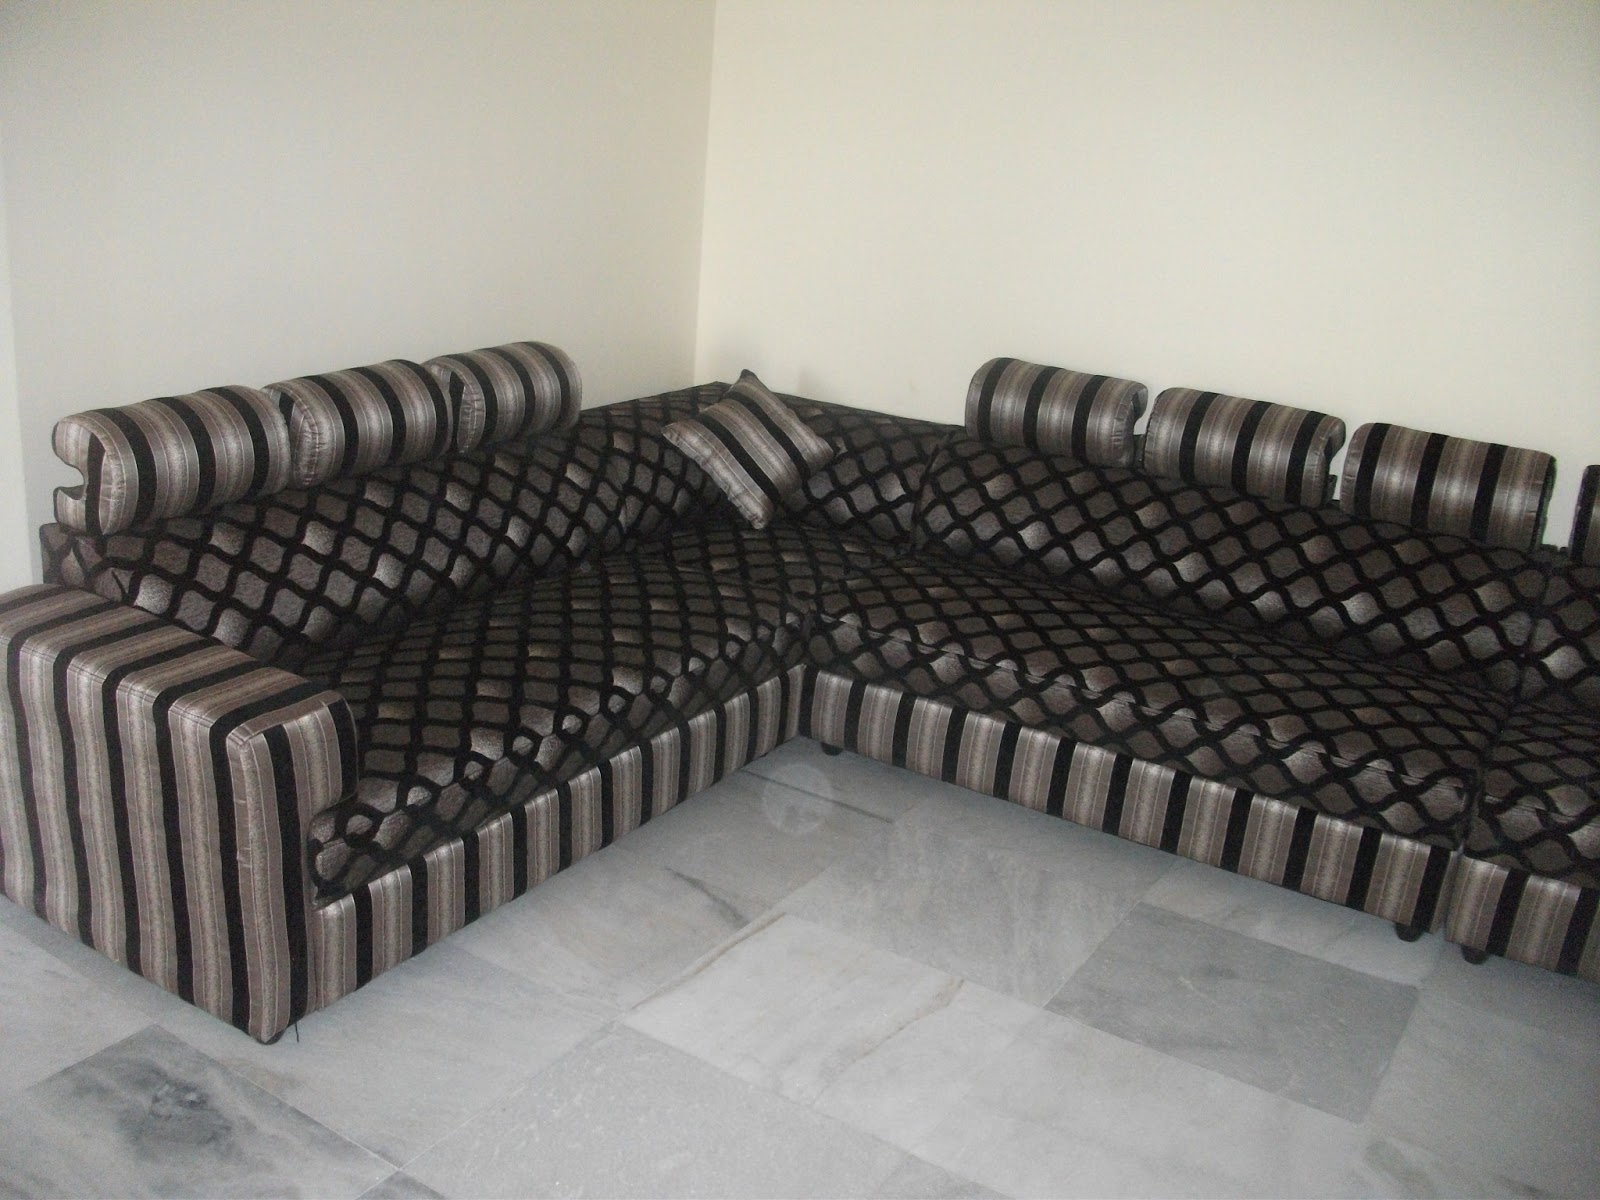 Leather Sofas In Hyderabad India Small Modular Sofa Manufacturers Brand New L Shape Set